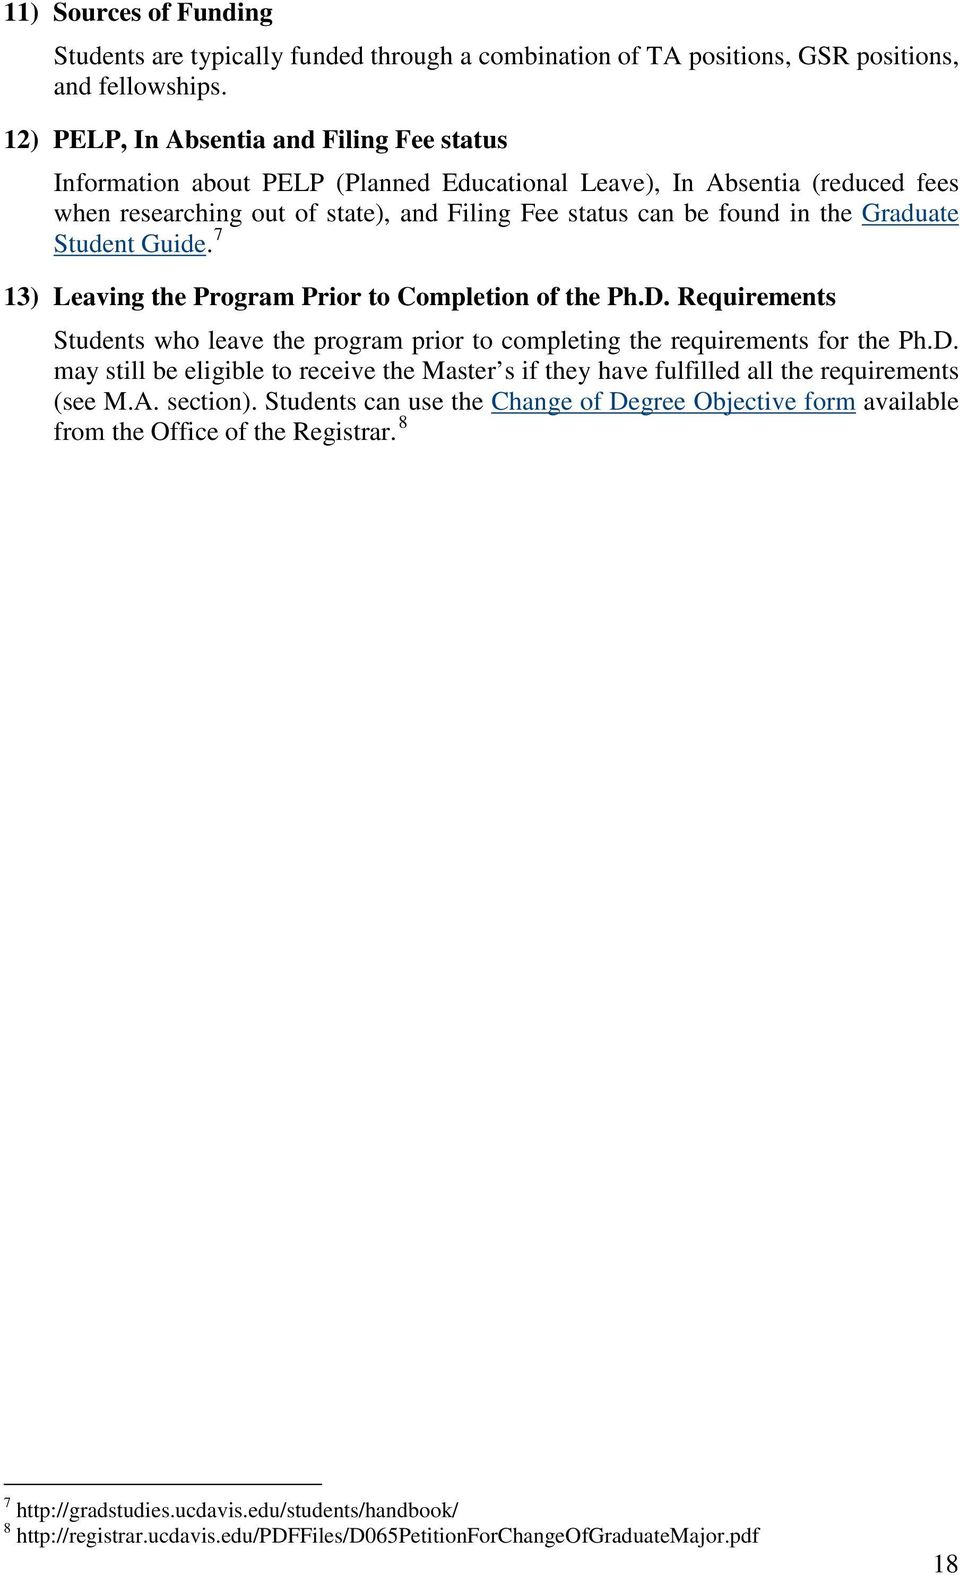 Graduate Student Guide. 7 13) Leaving the Program Prior to Completion of the Ph.D. Requirements Students who leave the program prior to completing the requirements for the Ph.D. may still be eligible to receive the Master s if they have fulfilled all the requirements (see M.